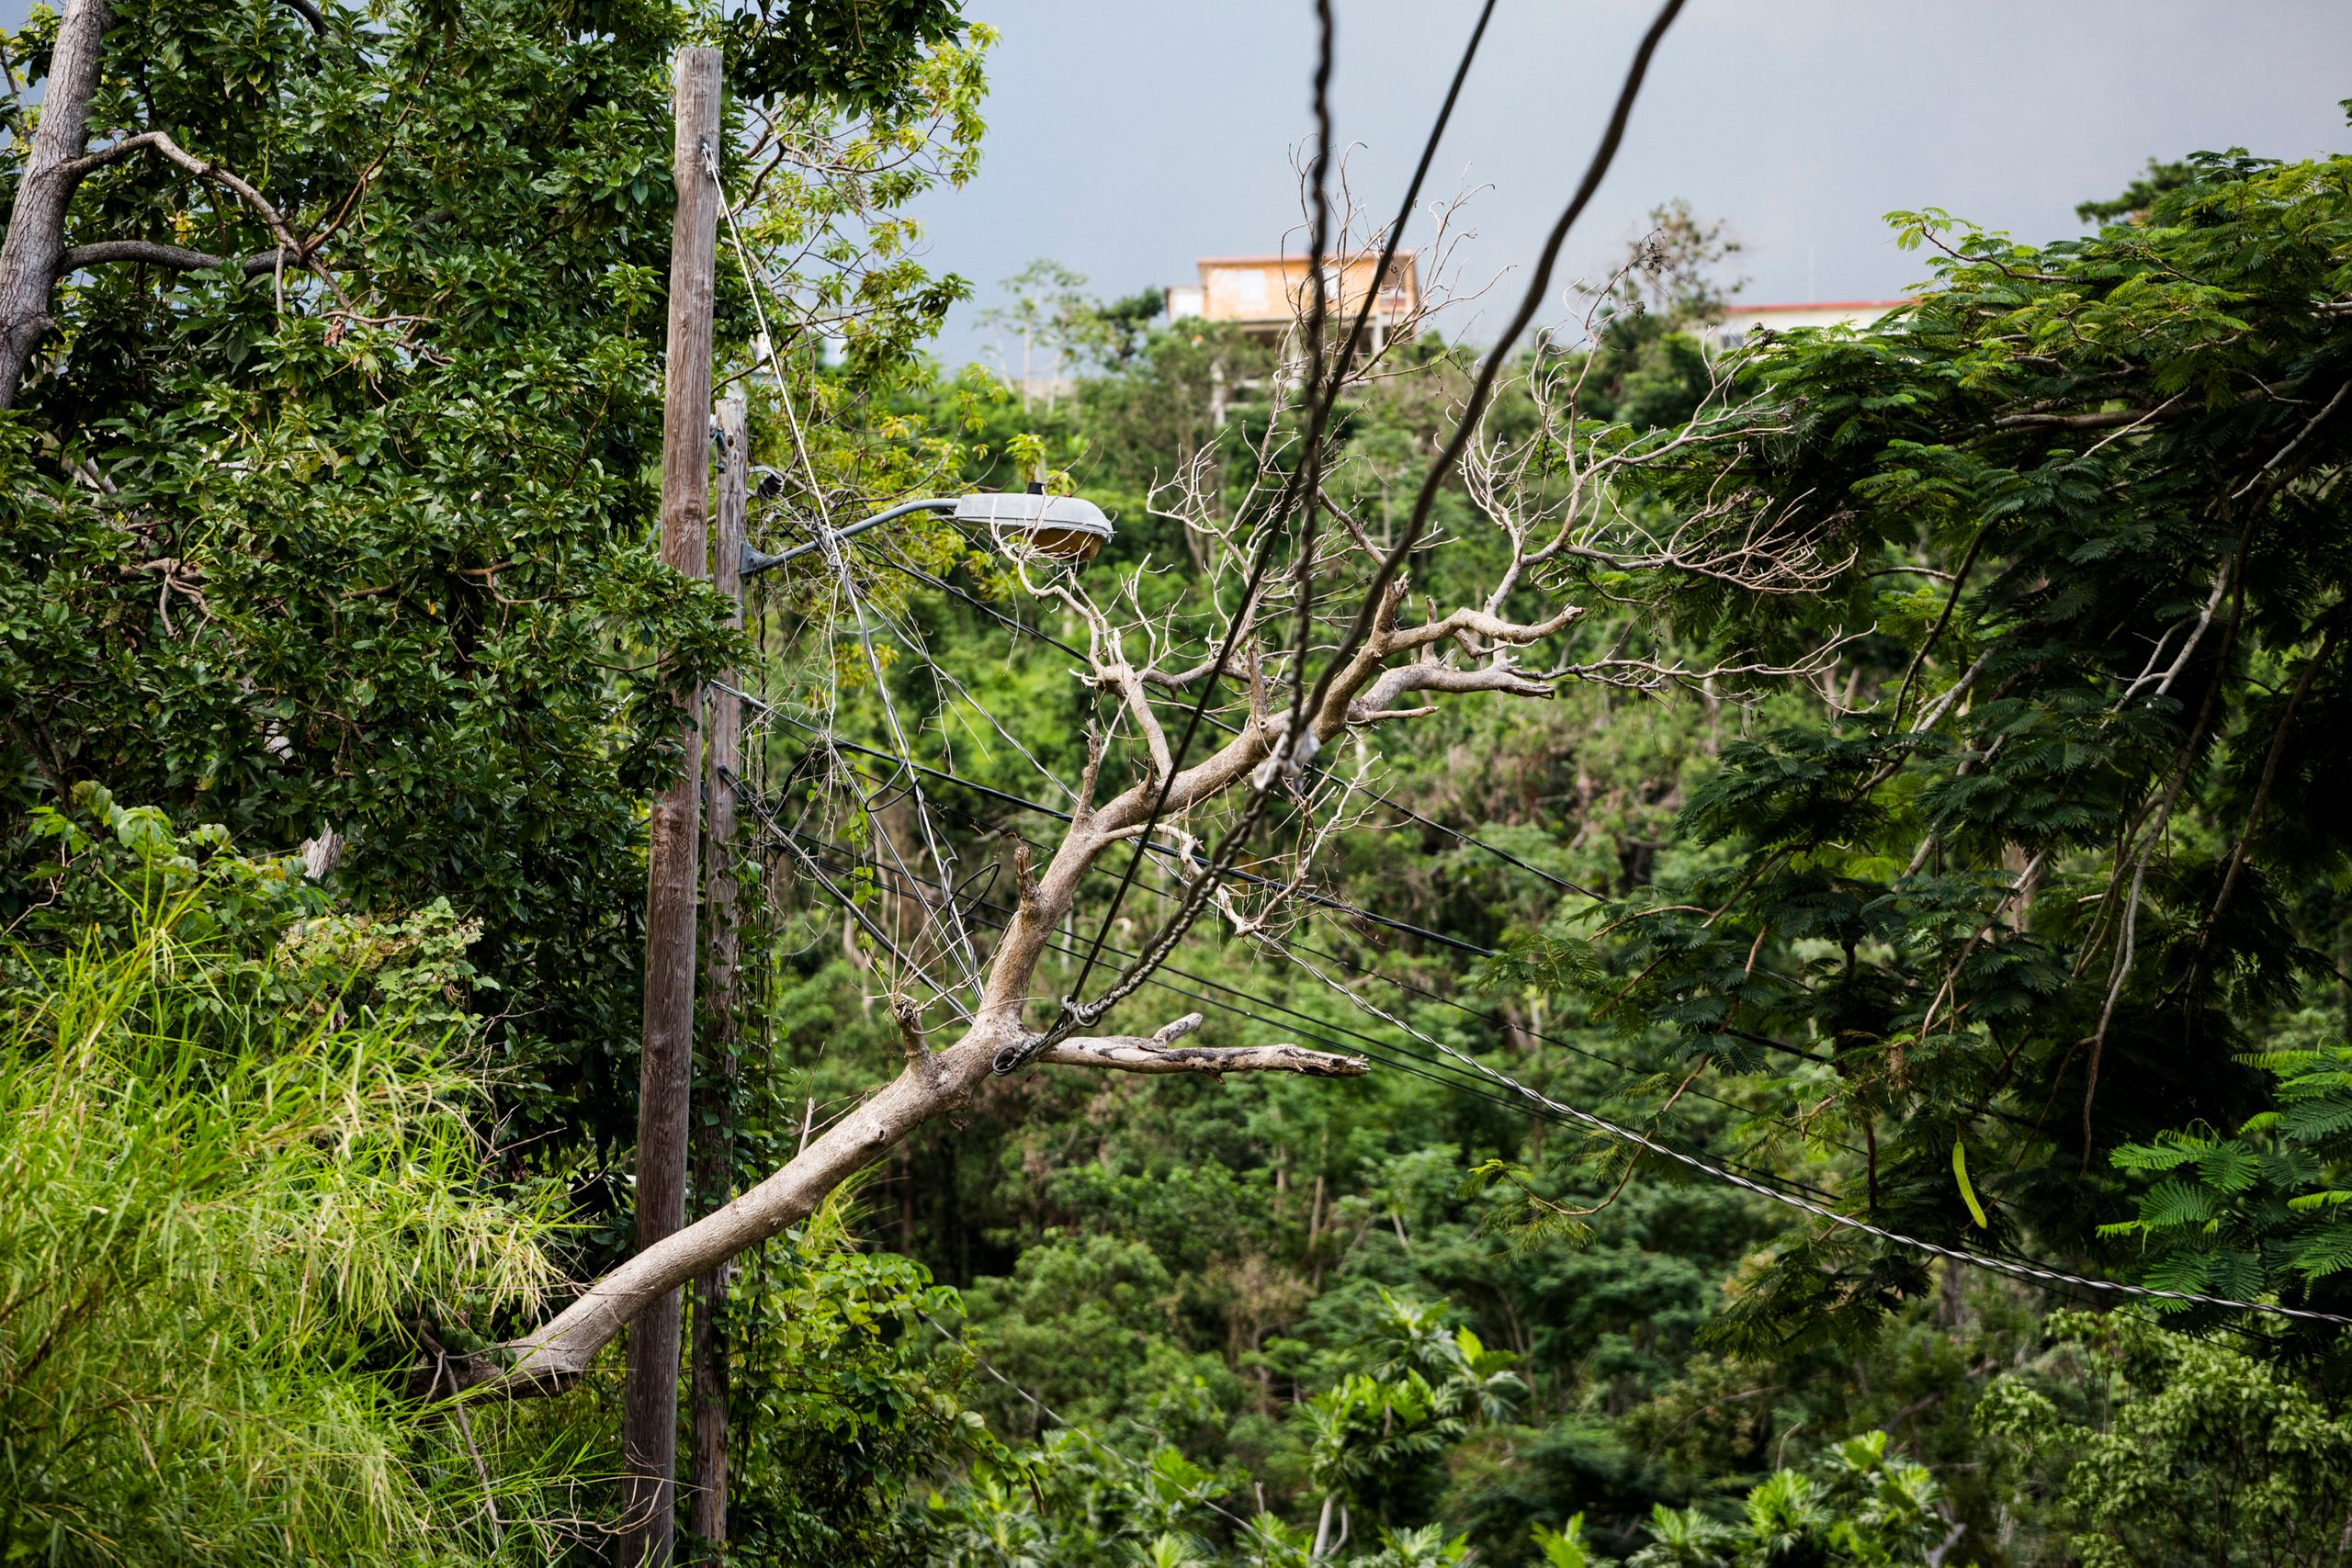 A tree branch ensnarled with electrical wires in the mountains of Rincón, Puerto Rico